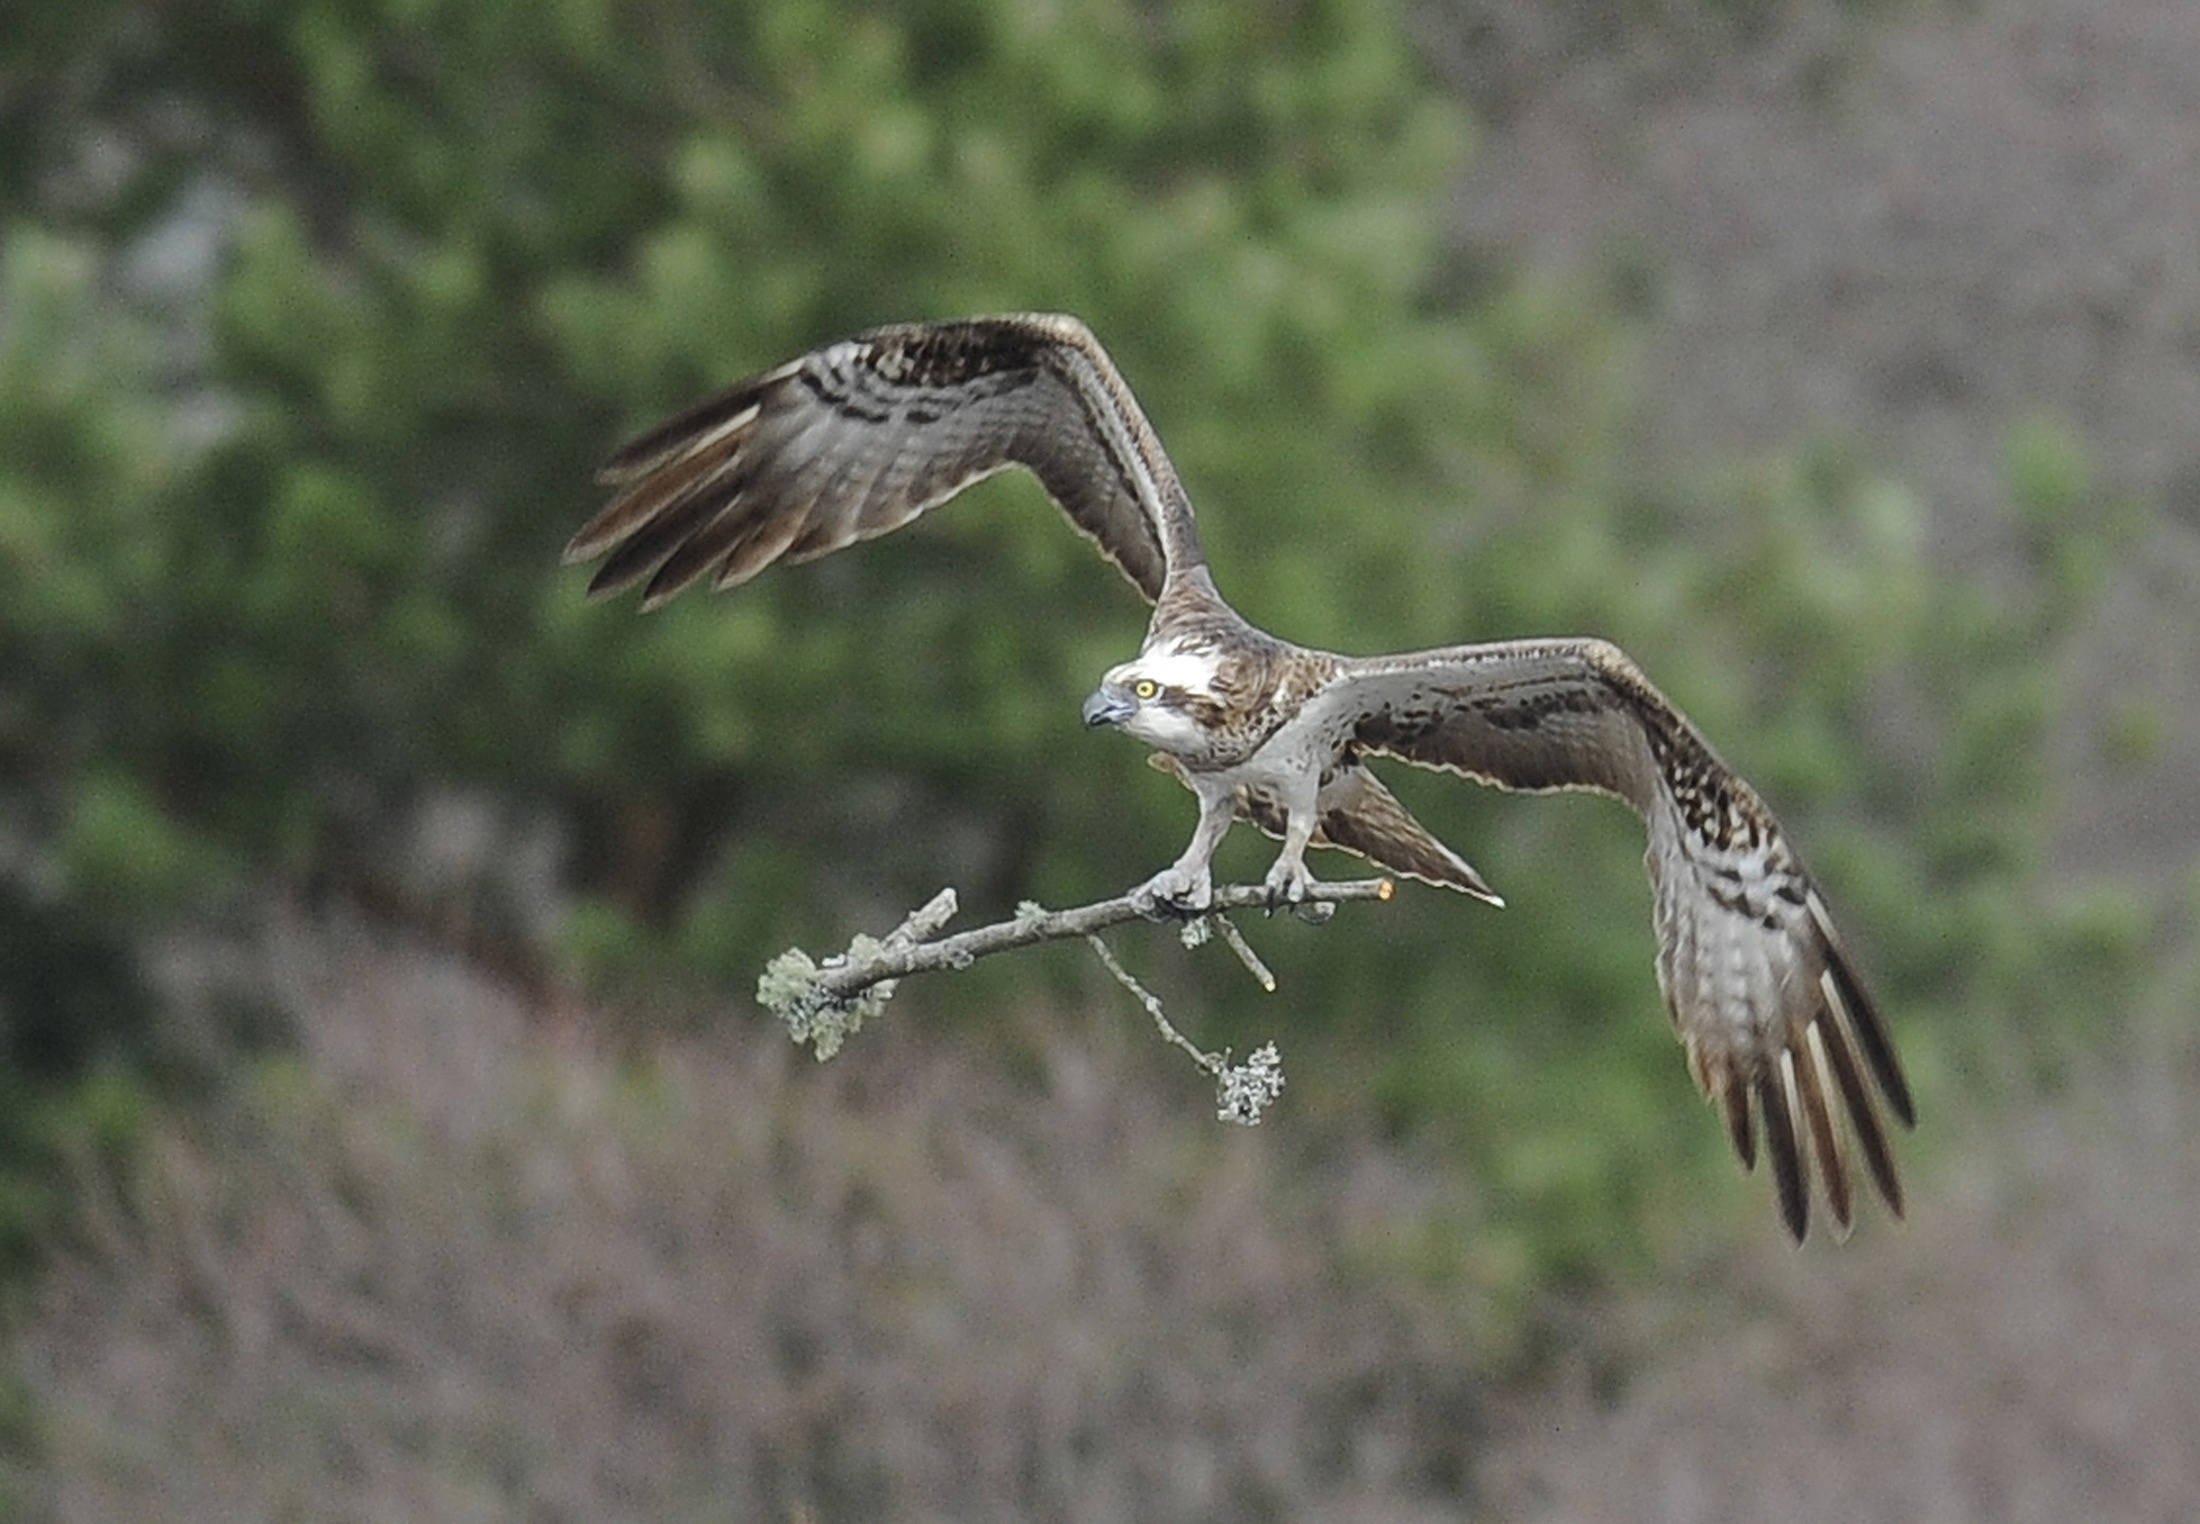 A female Osprey carries a tree branch to her nest at Loch of the Lowes Wildlife Reserve, Perthshire, Scotland.